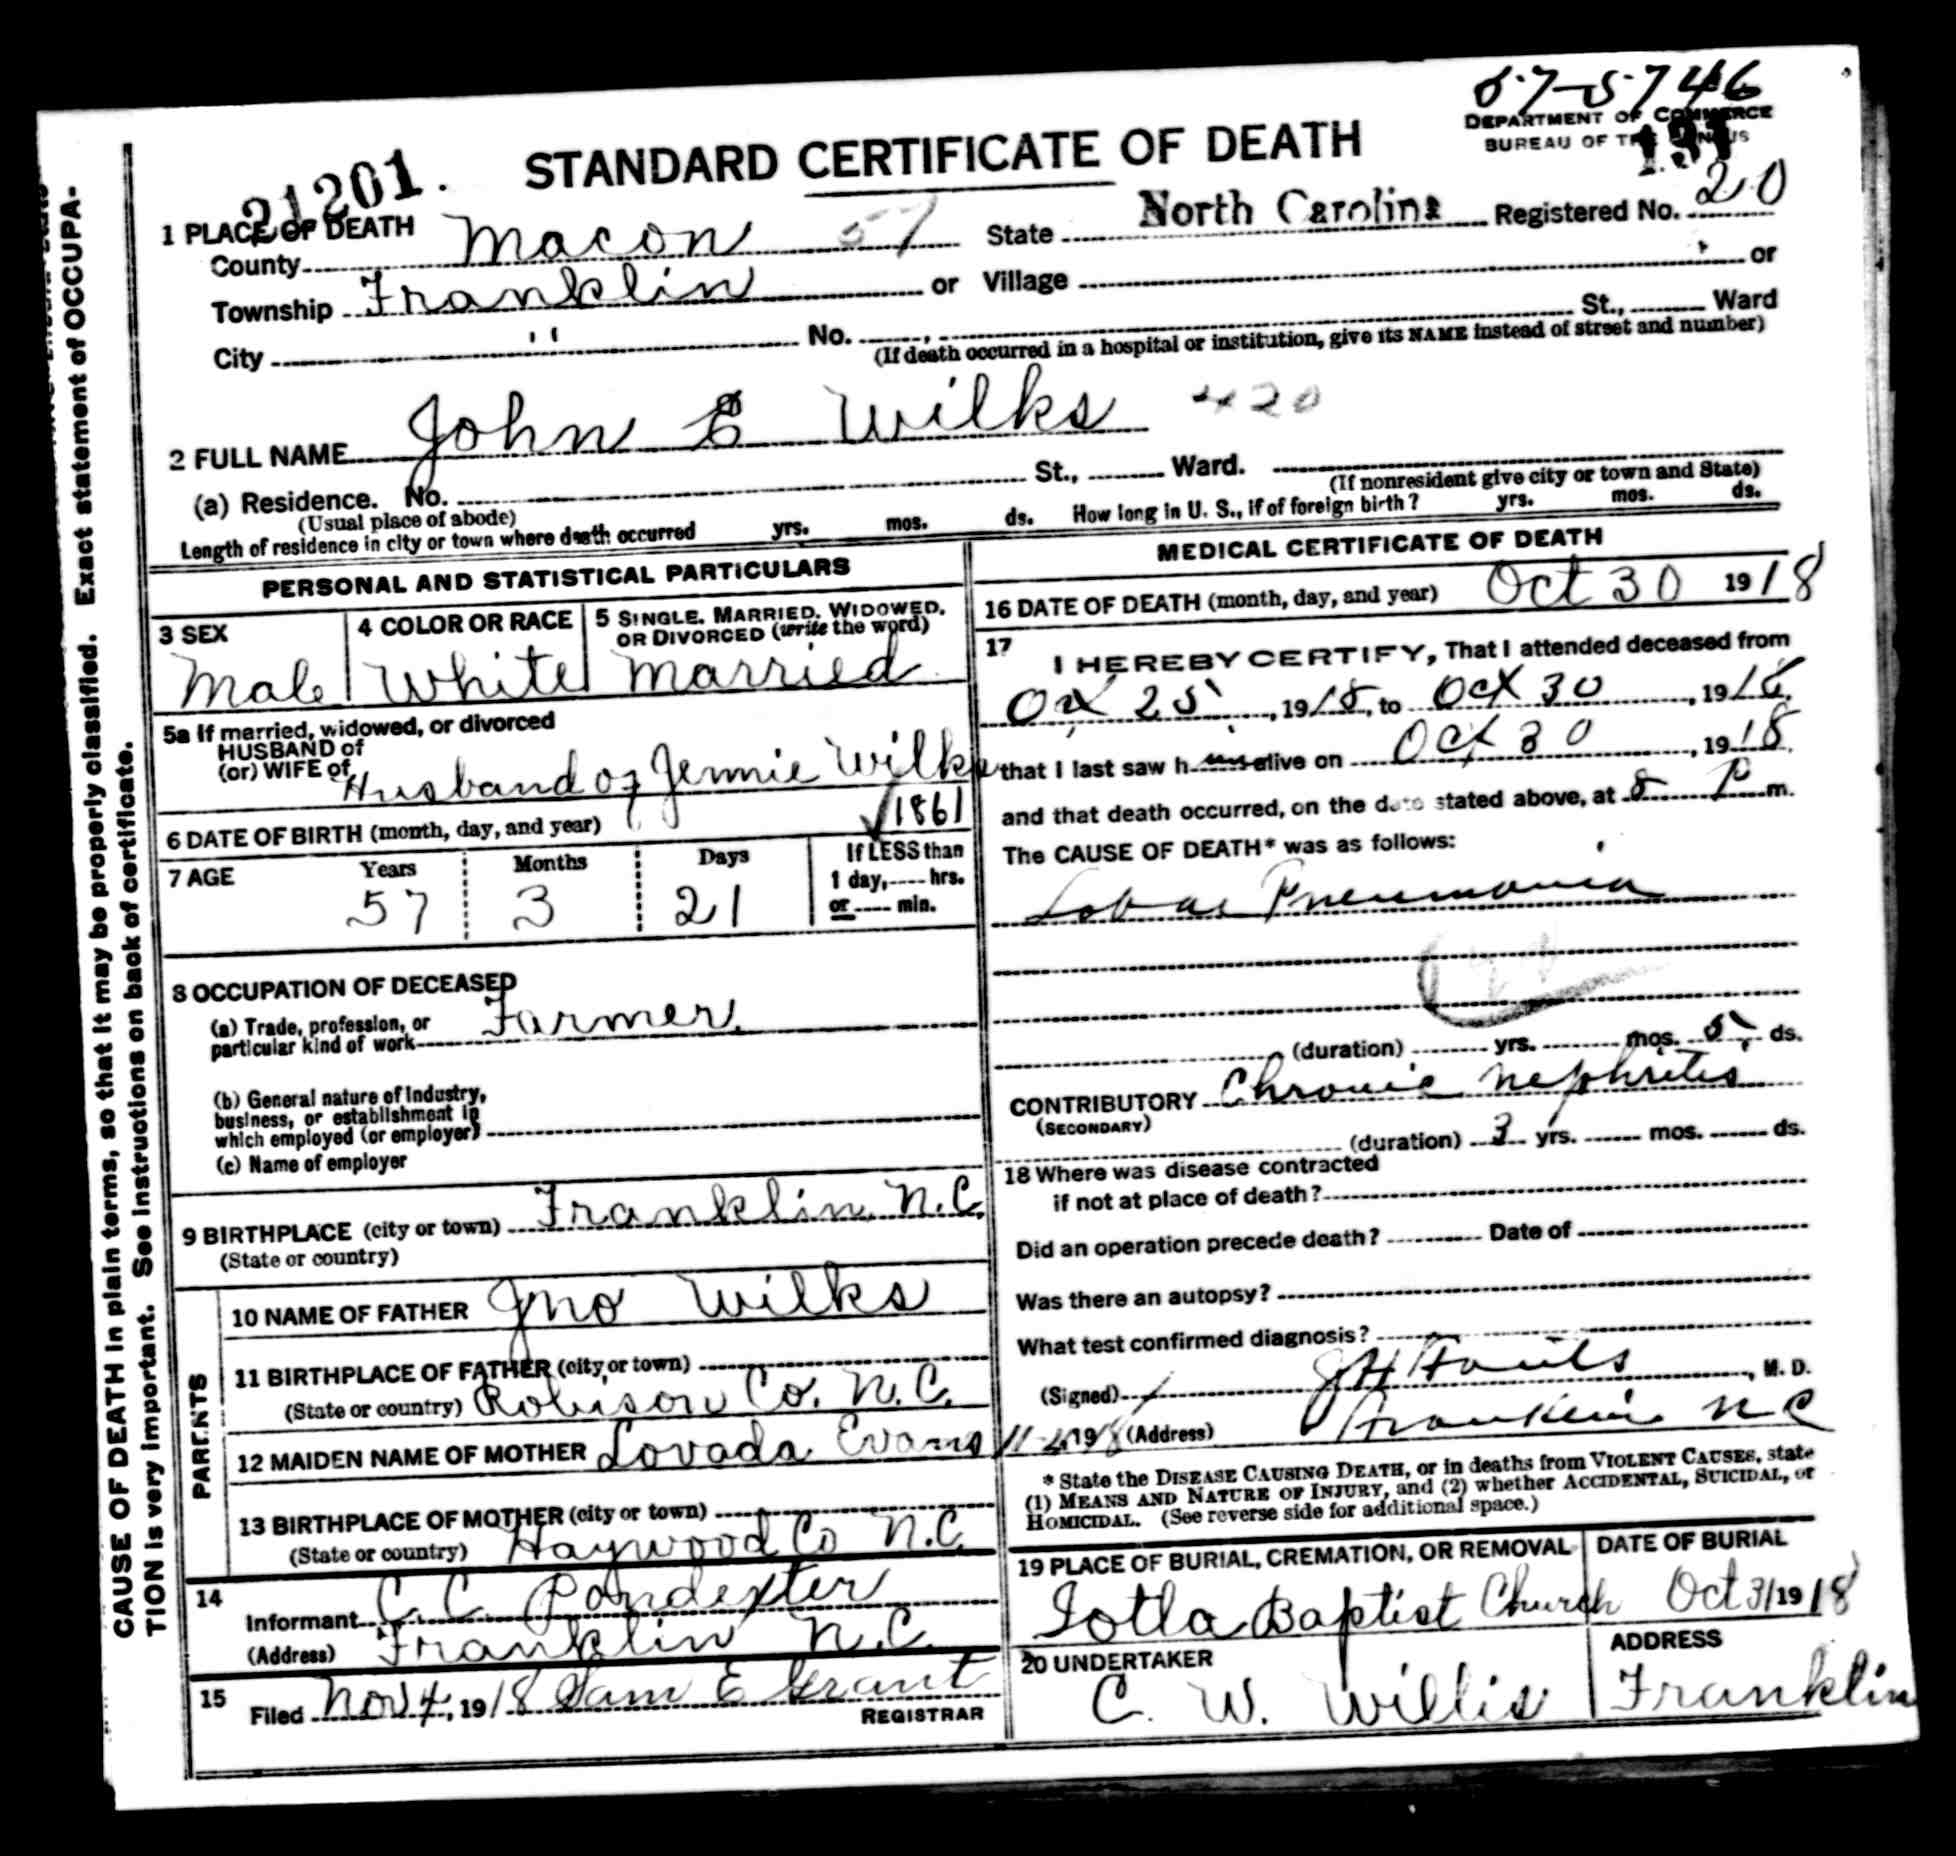 John e wilkes of macon county nc death certificate acw use the slider to resize the image john e wilkes of macon county nc death certificate xflitez Choice Image